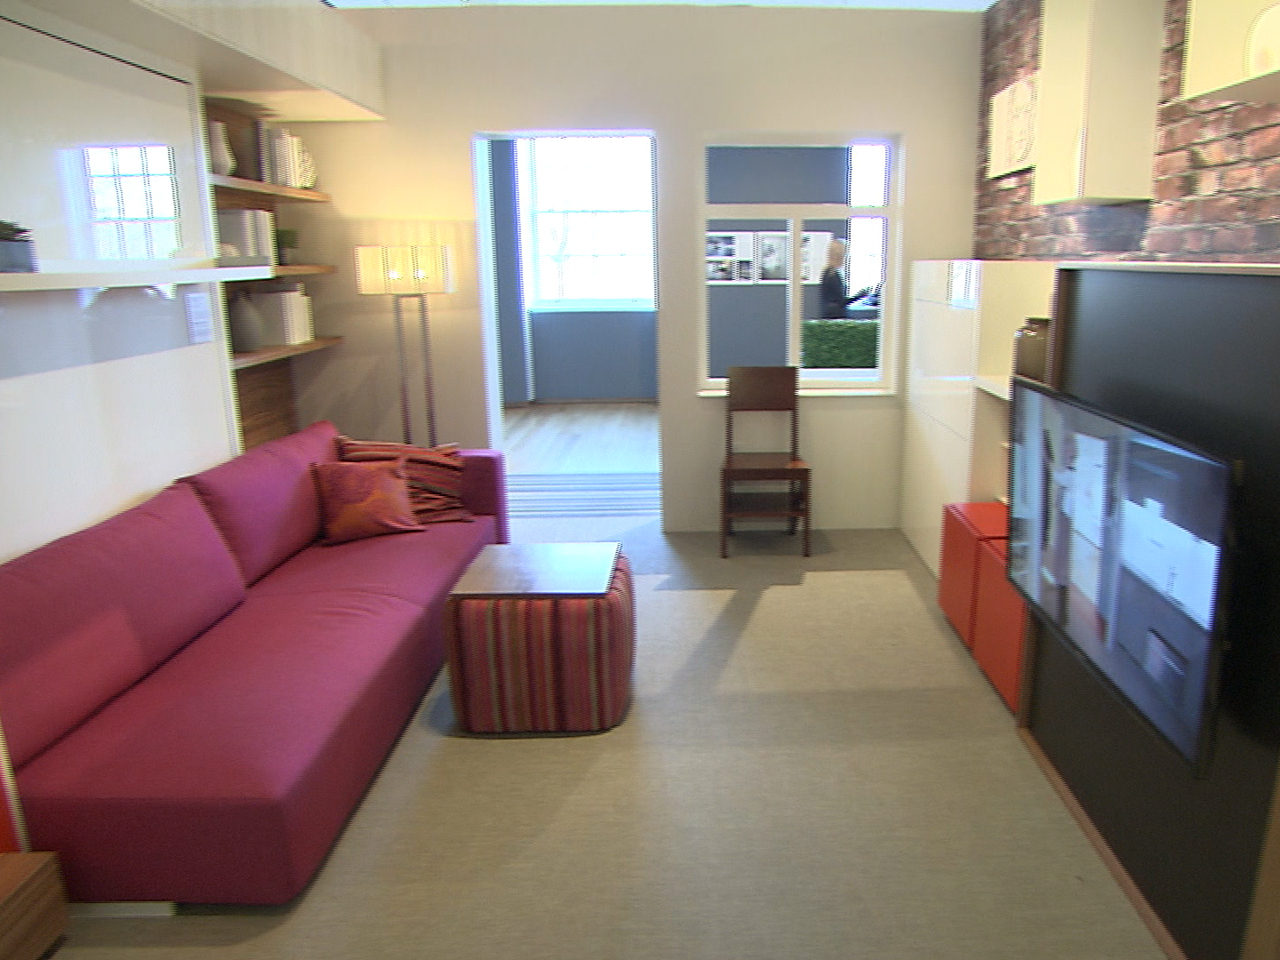 Tiny Apartments Pack Nyc Life Into 350 Square Feet Today Com